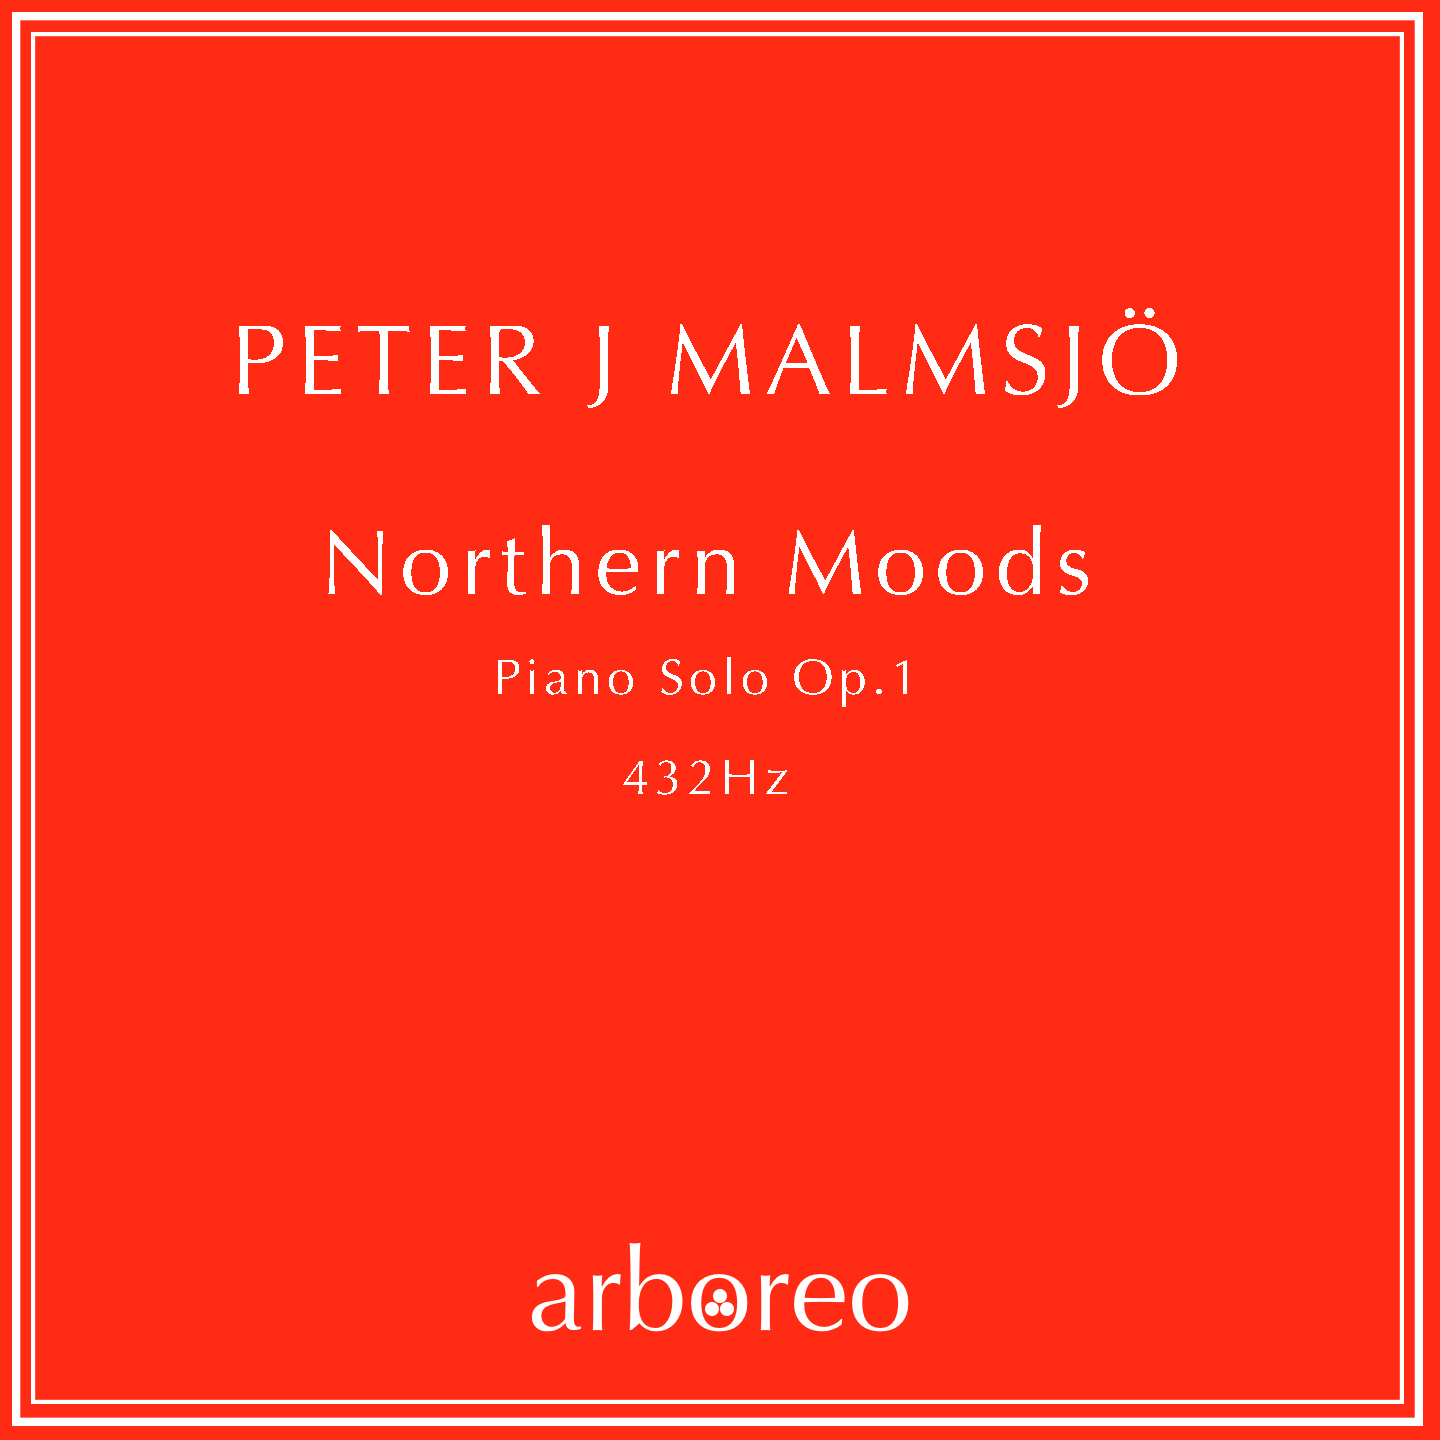 Northern Moods - Piano Solo Op. 1